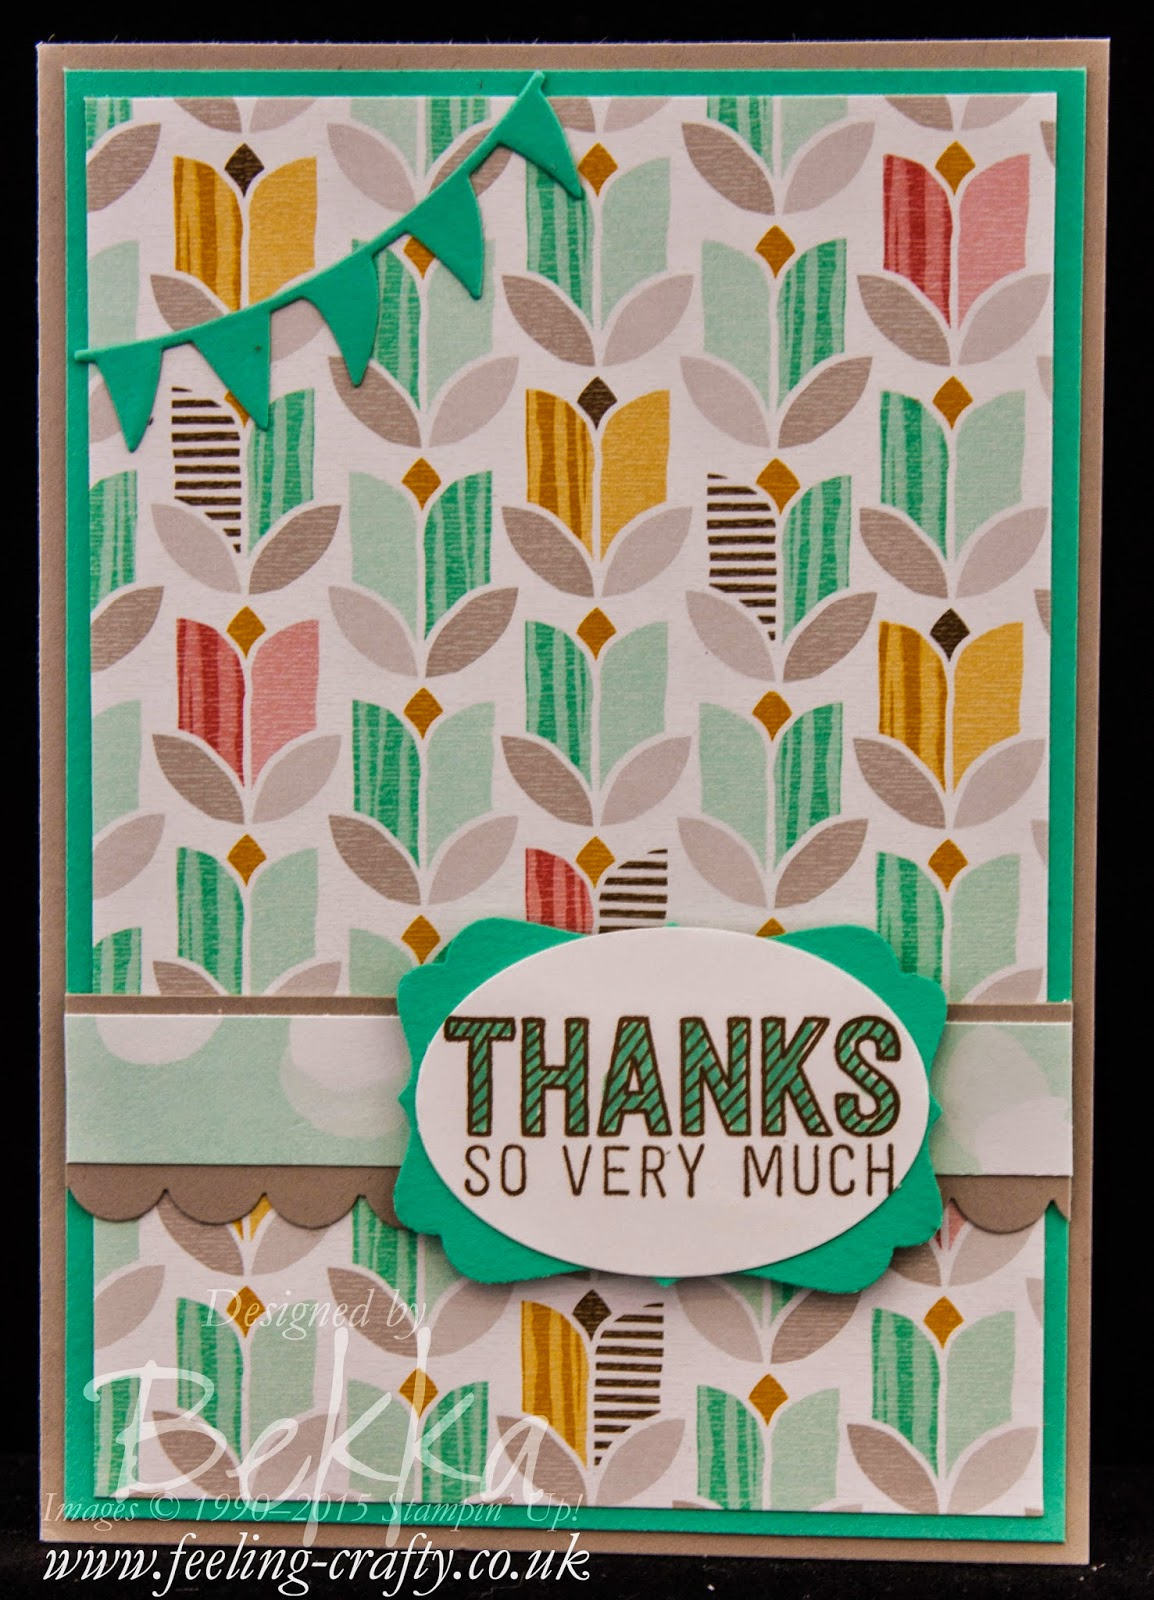 Simply Wonderful Thank You Cards - Check this blog for lots of cute ideas